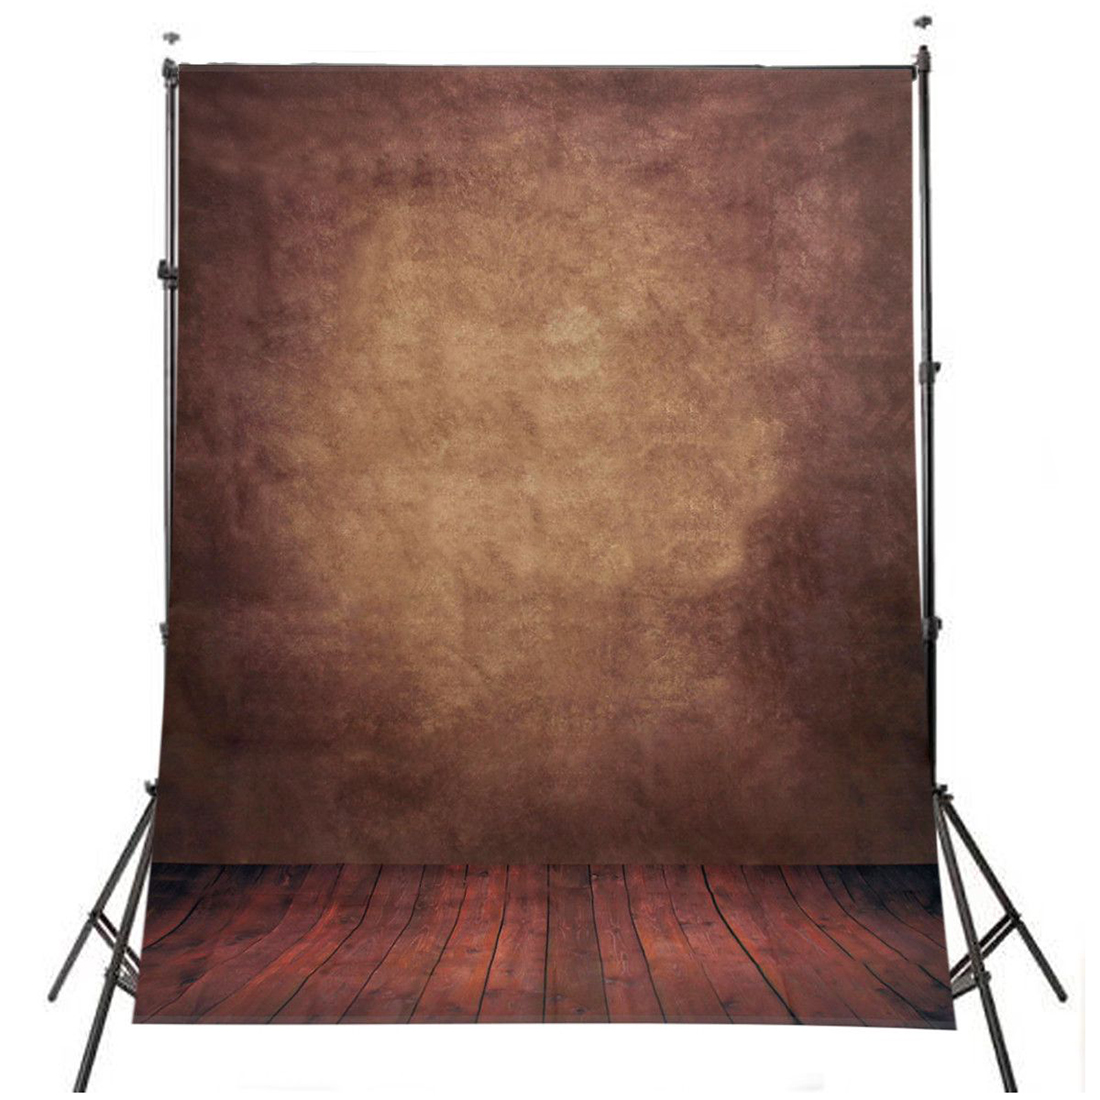 EDT 0 9m x 1 5m Wooden Floor Photography Backdrops Dreamlike Background For Studio Props Dark